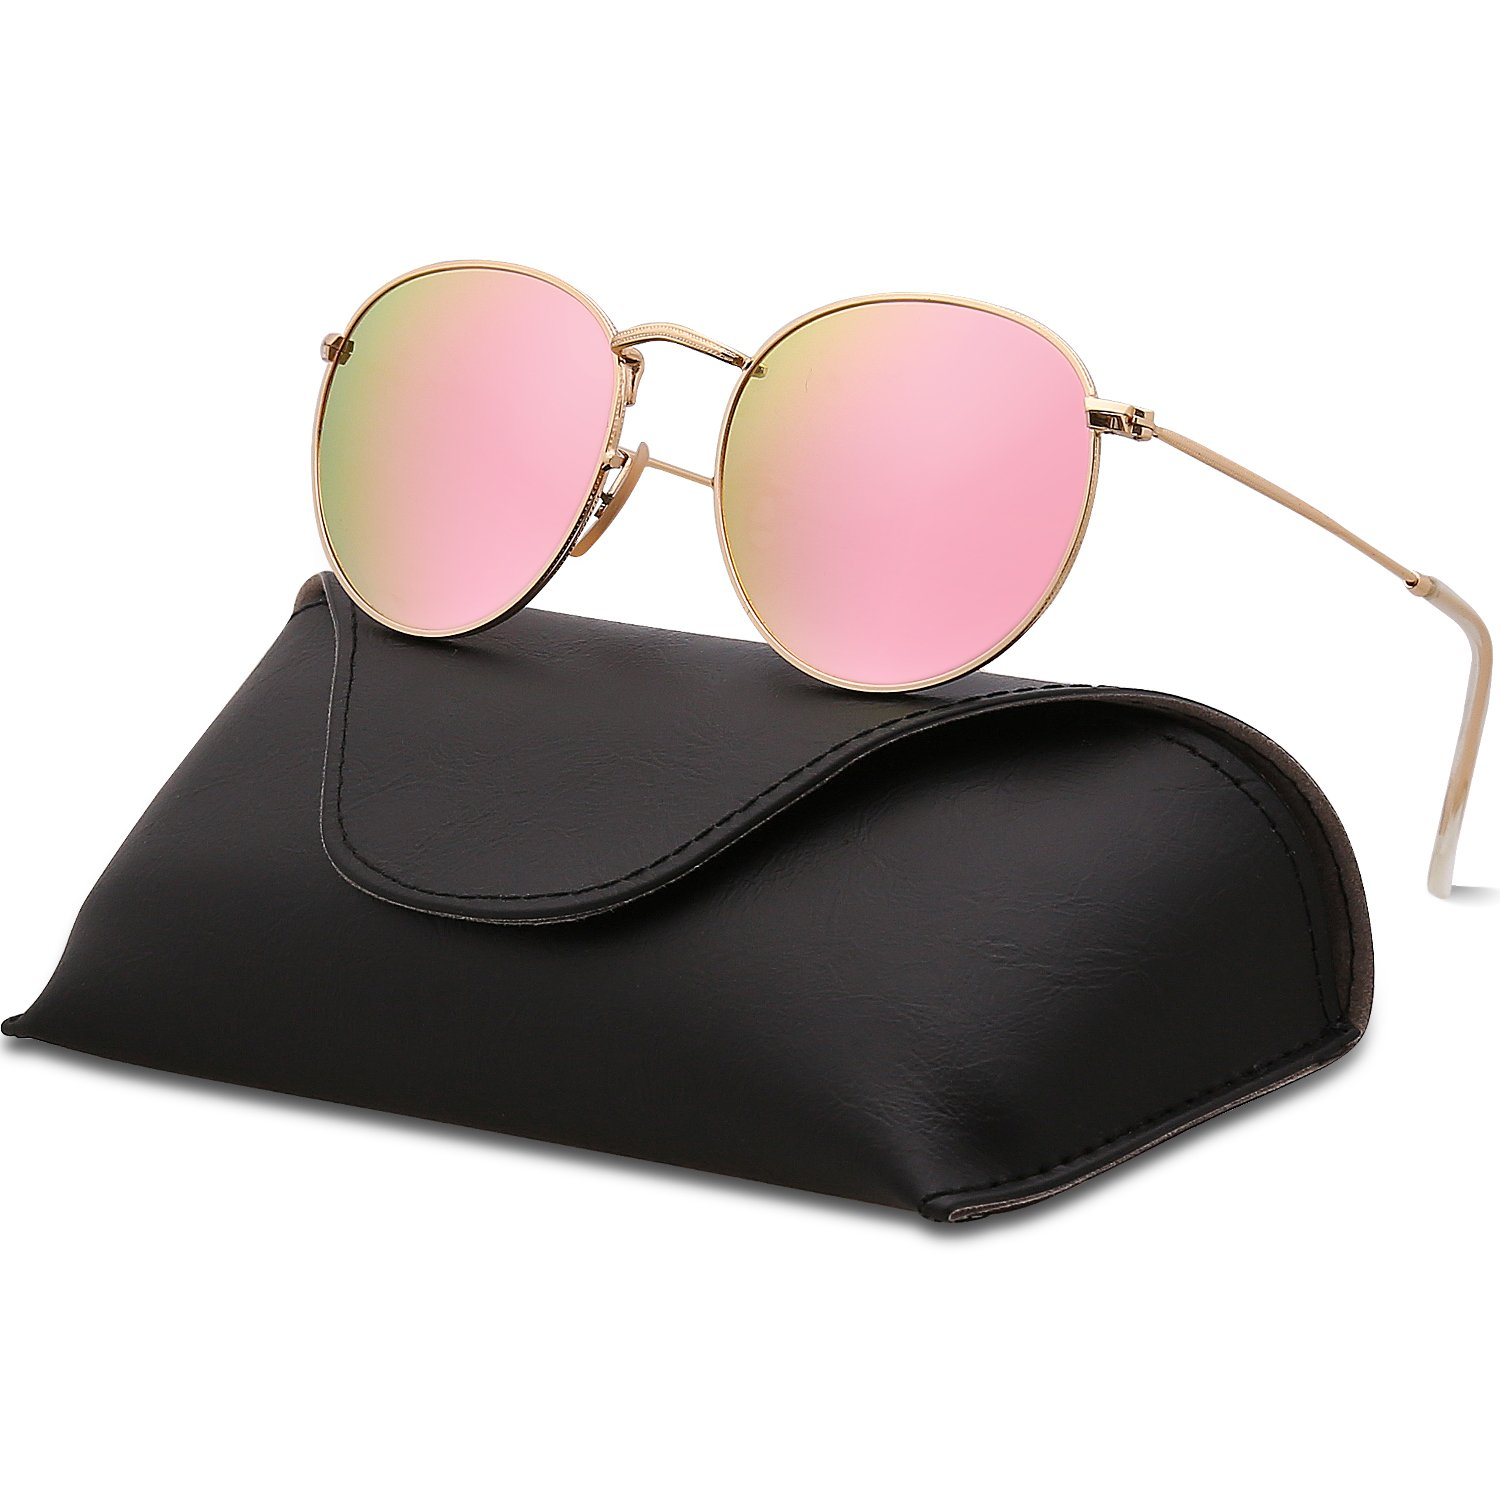 SOJOS Small Round Polarized Sunglasses Mirrored Lens Unisex Glasses SJ1014 3447 with Gold Frame/Pink Mirrored Polarized Lens with Case by SOJOS